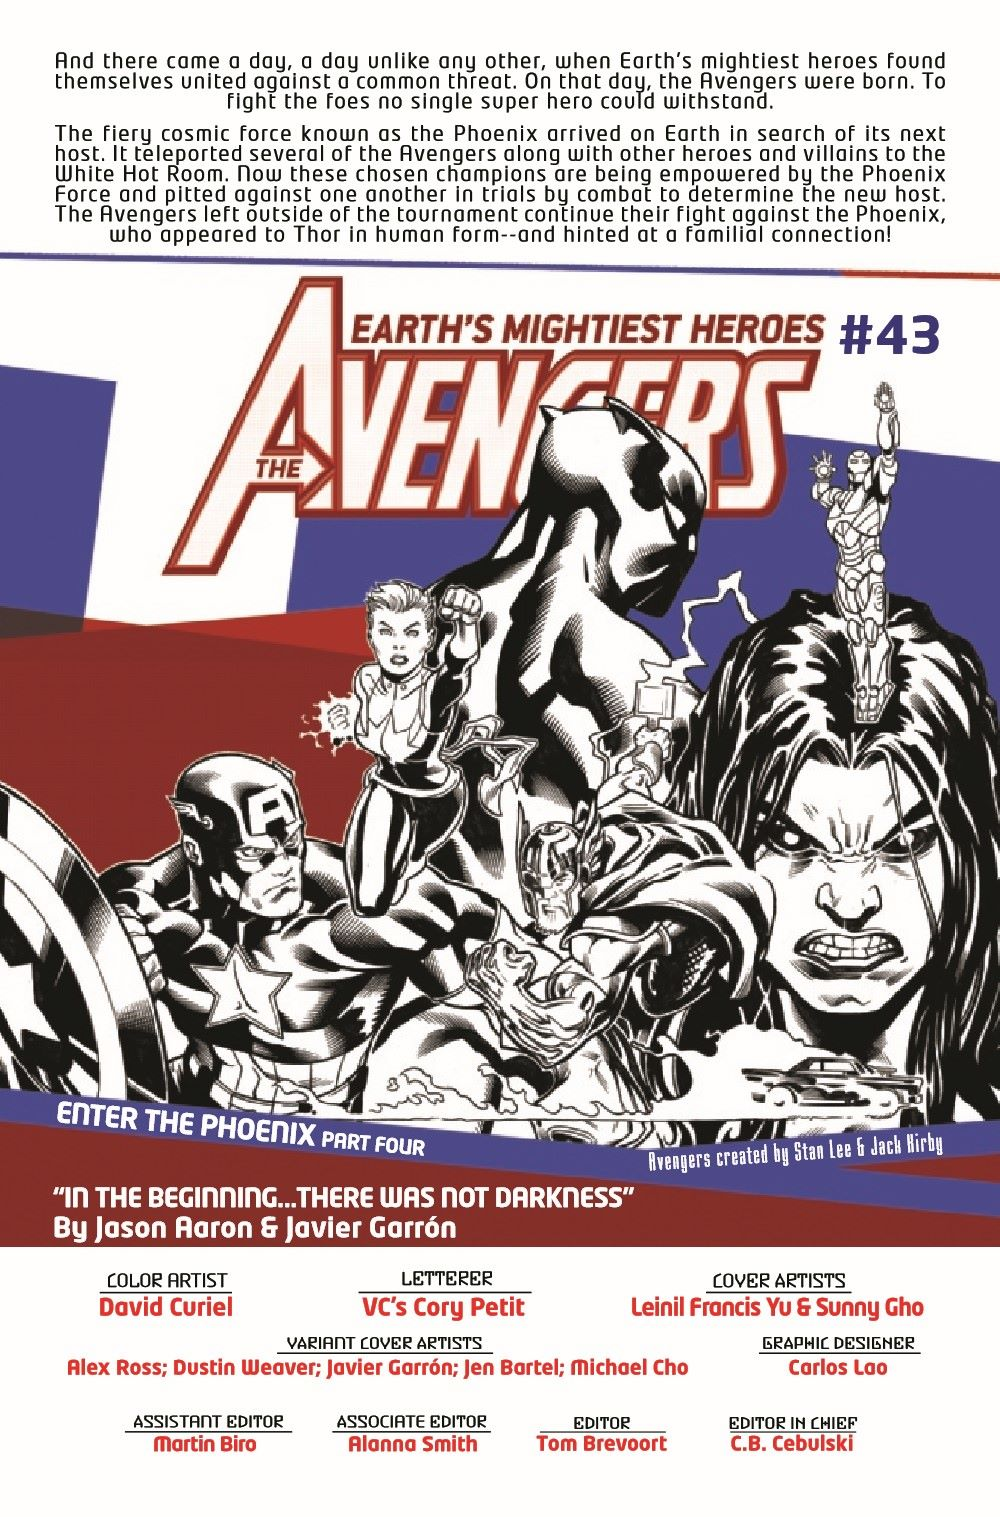 AVEN2018043_Preview-2 ComicList Previews: THE AVENGERS #43